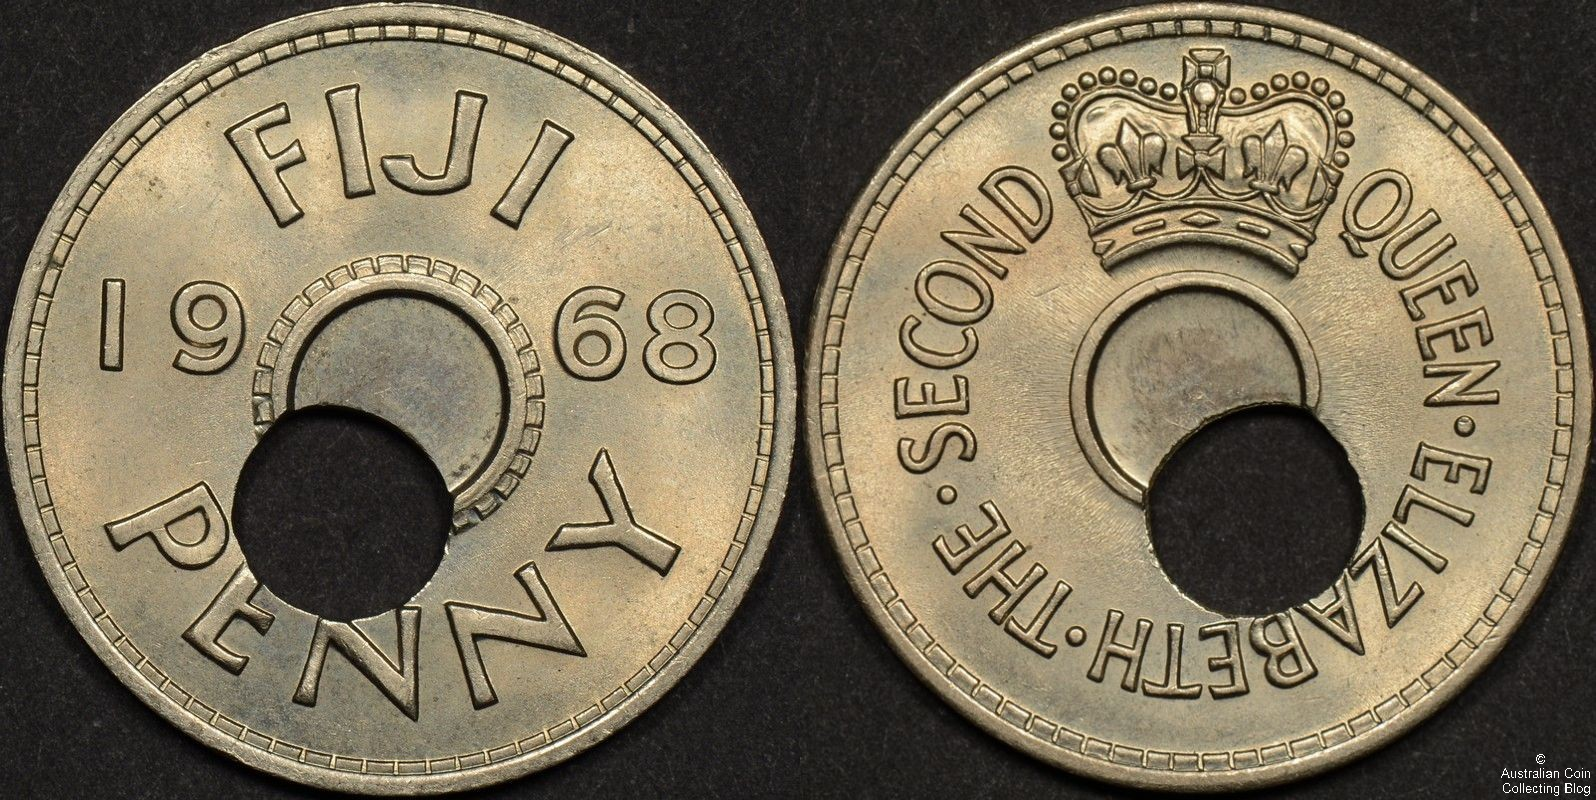 Fiji 1968 Penny Off-Center Hole